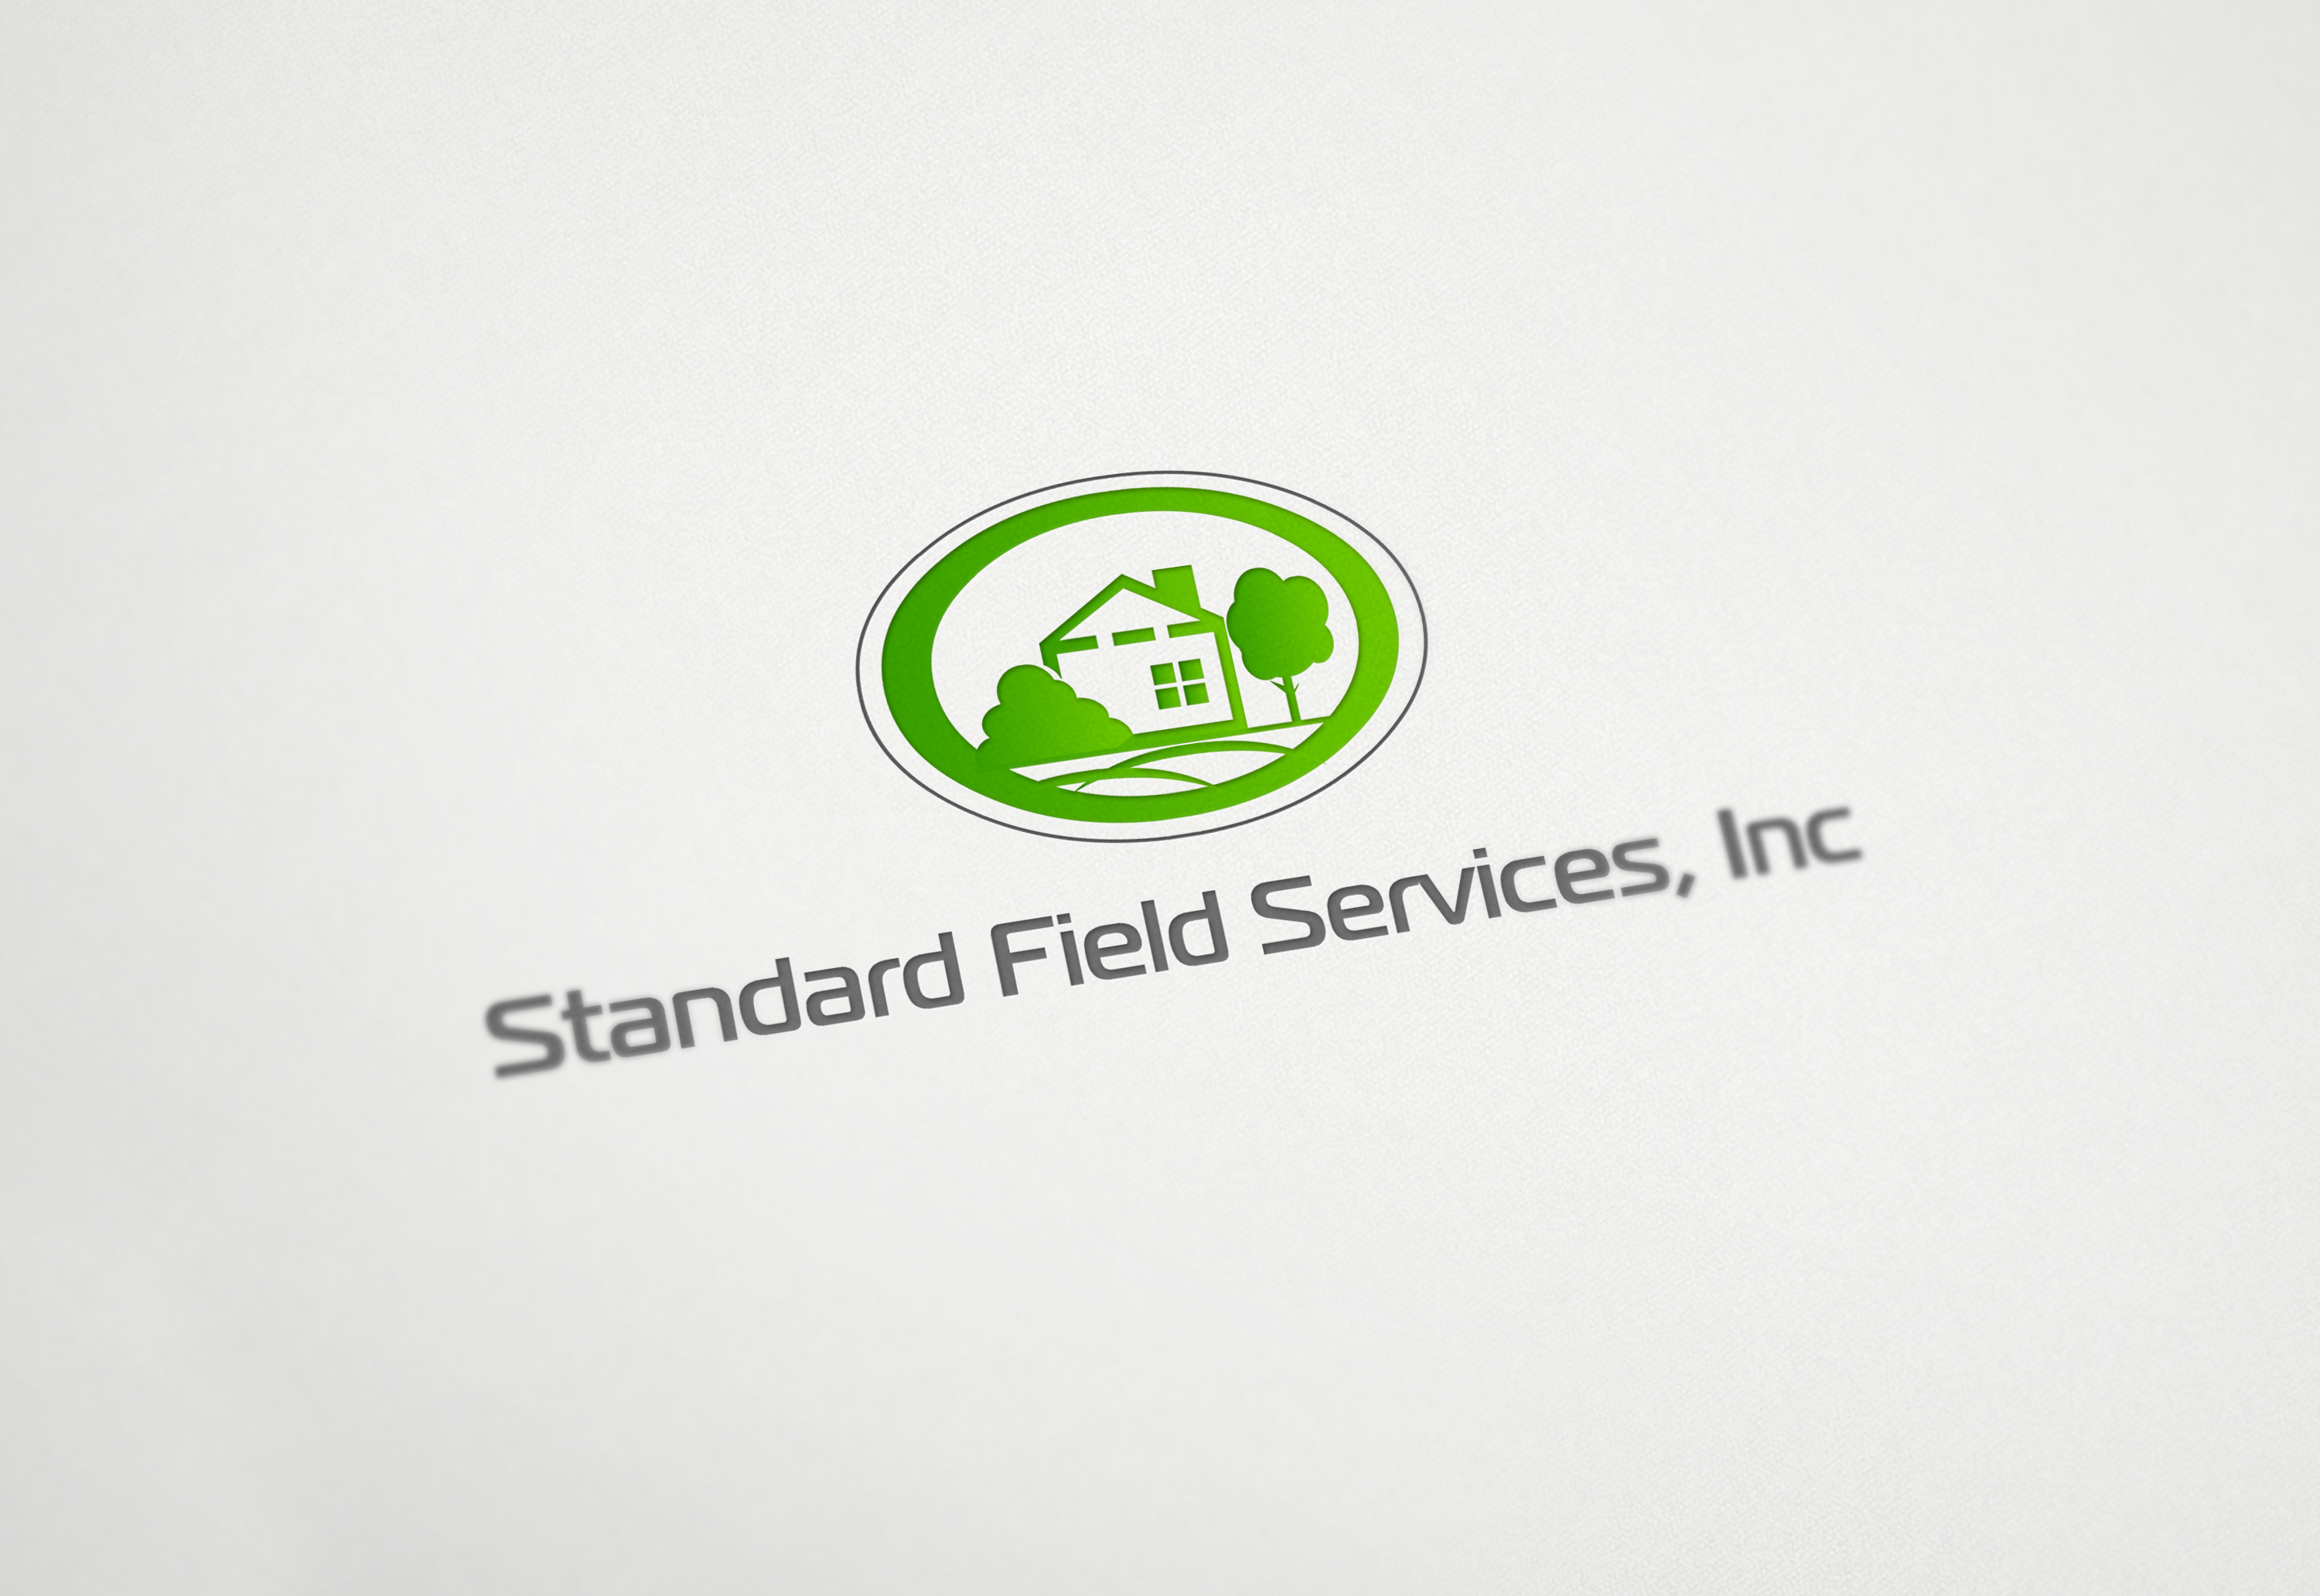 Logo Design by Private User - Entry No. 24 in the Logo Design Contest Inspiring Logo Design for Standard Field Services, Inc..